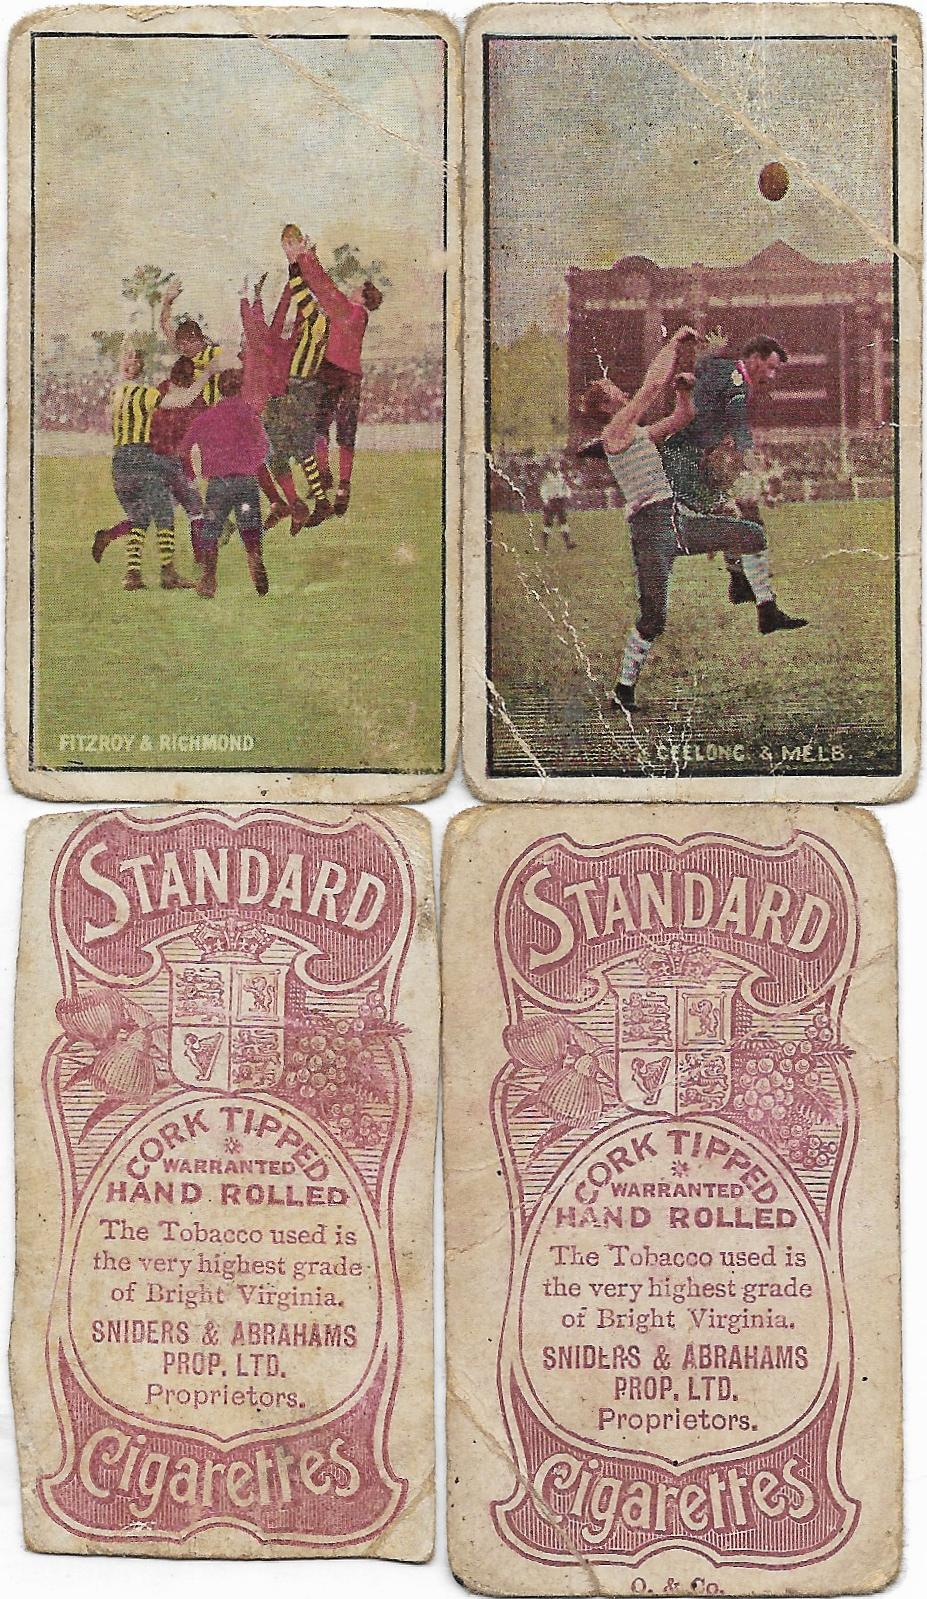 1904 - 09 Incidents In Play